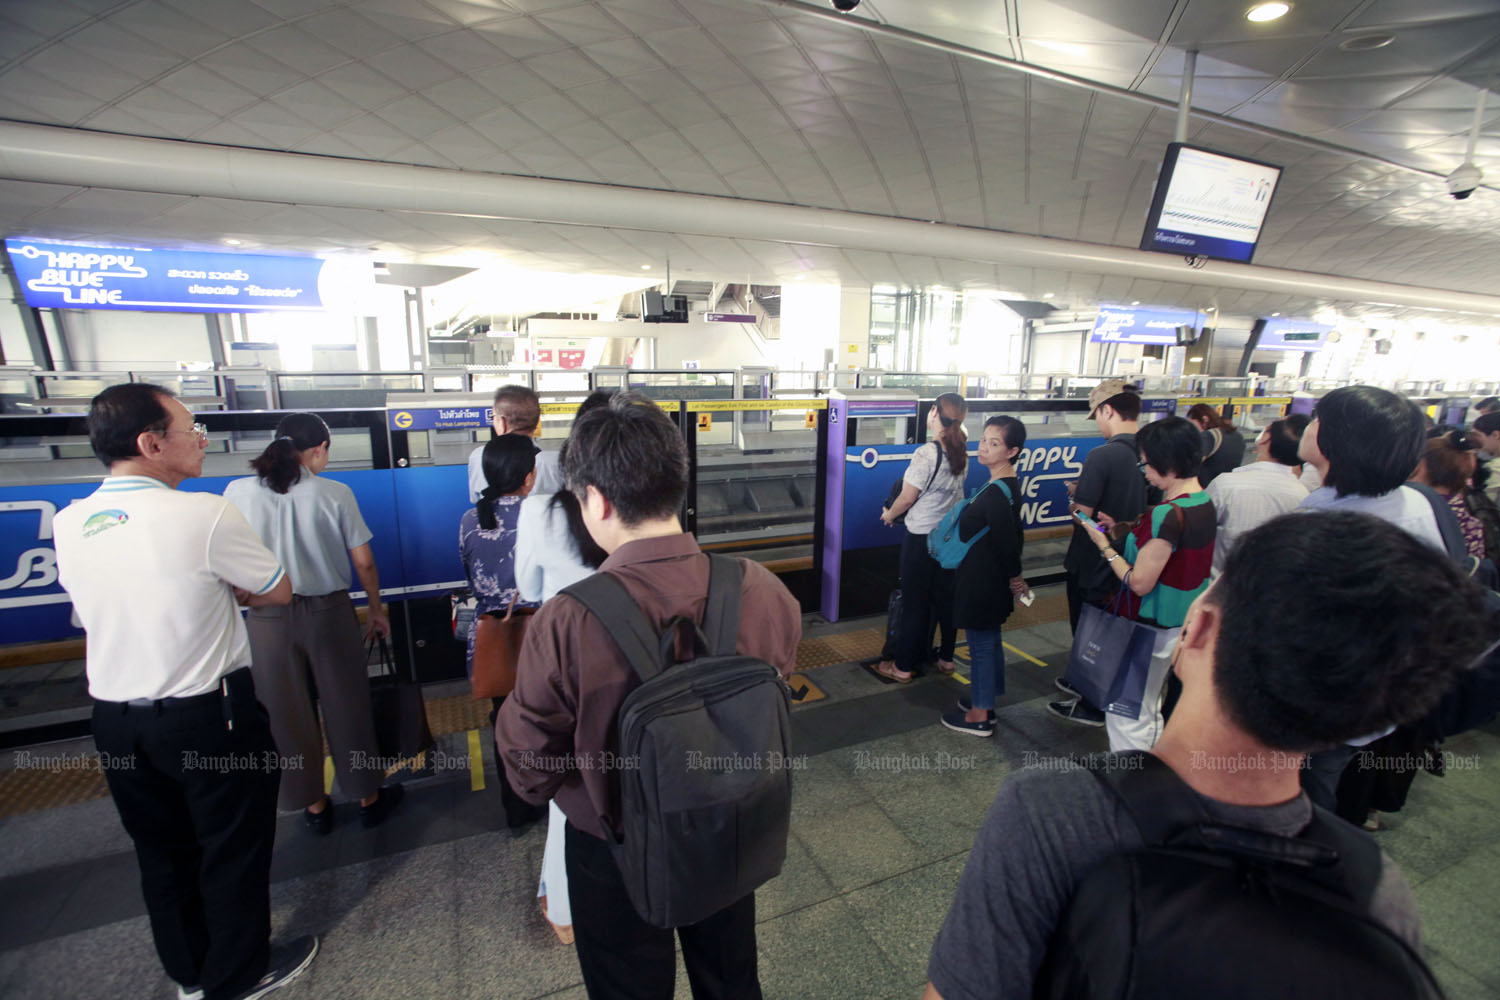 Commuters have to wait until at least 2020 for the common ticketing system designed to link all modes of public transport in Bangkok. (Photo by Pornprom Satrabhaya)